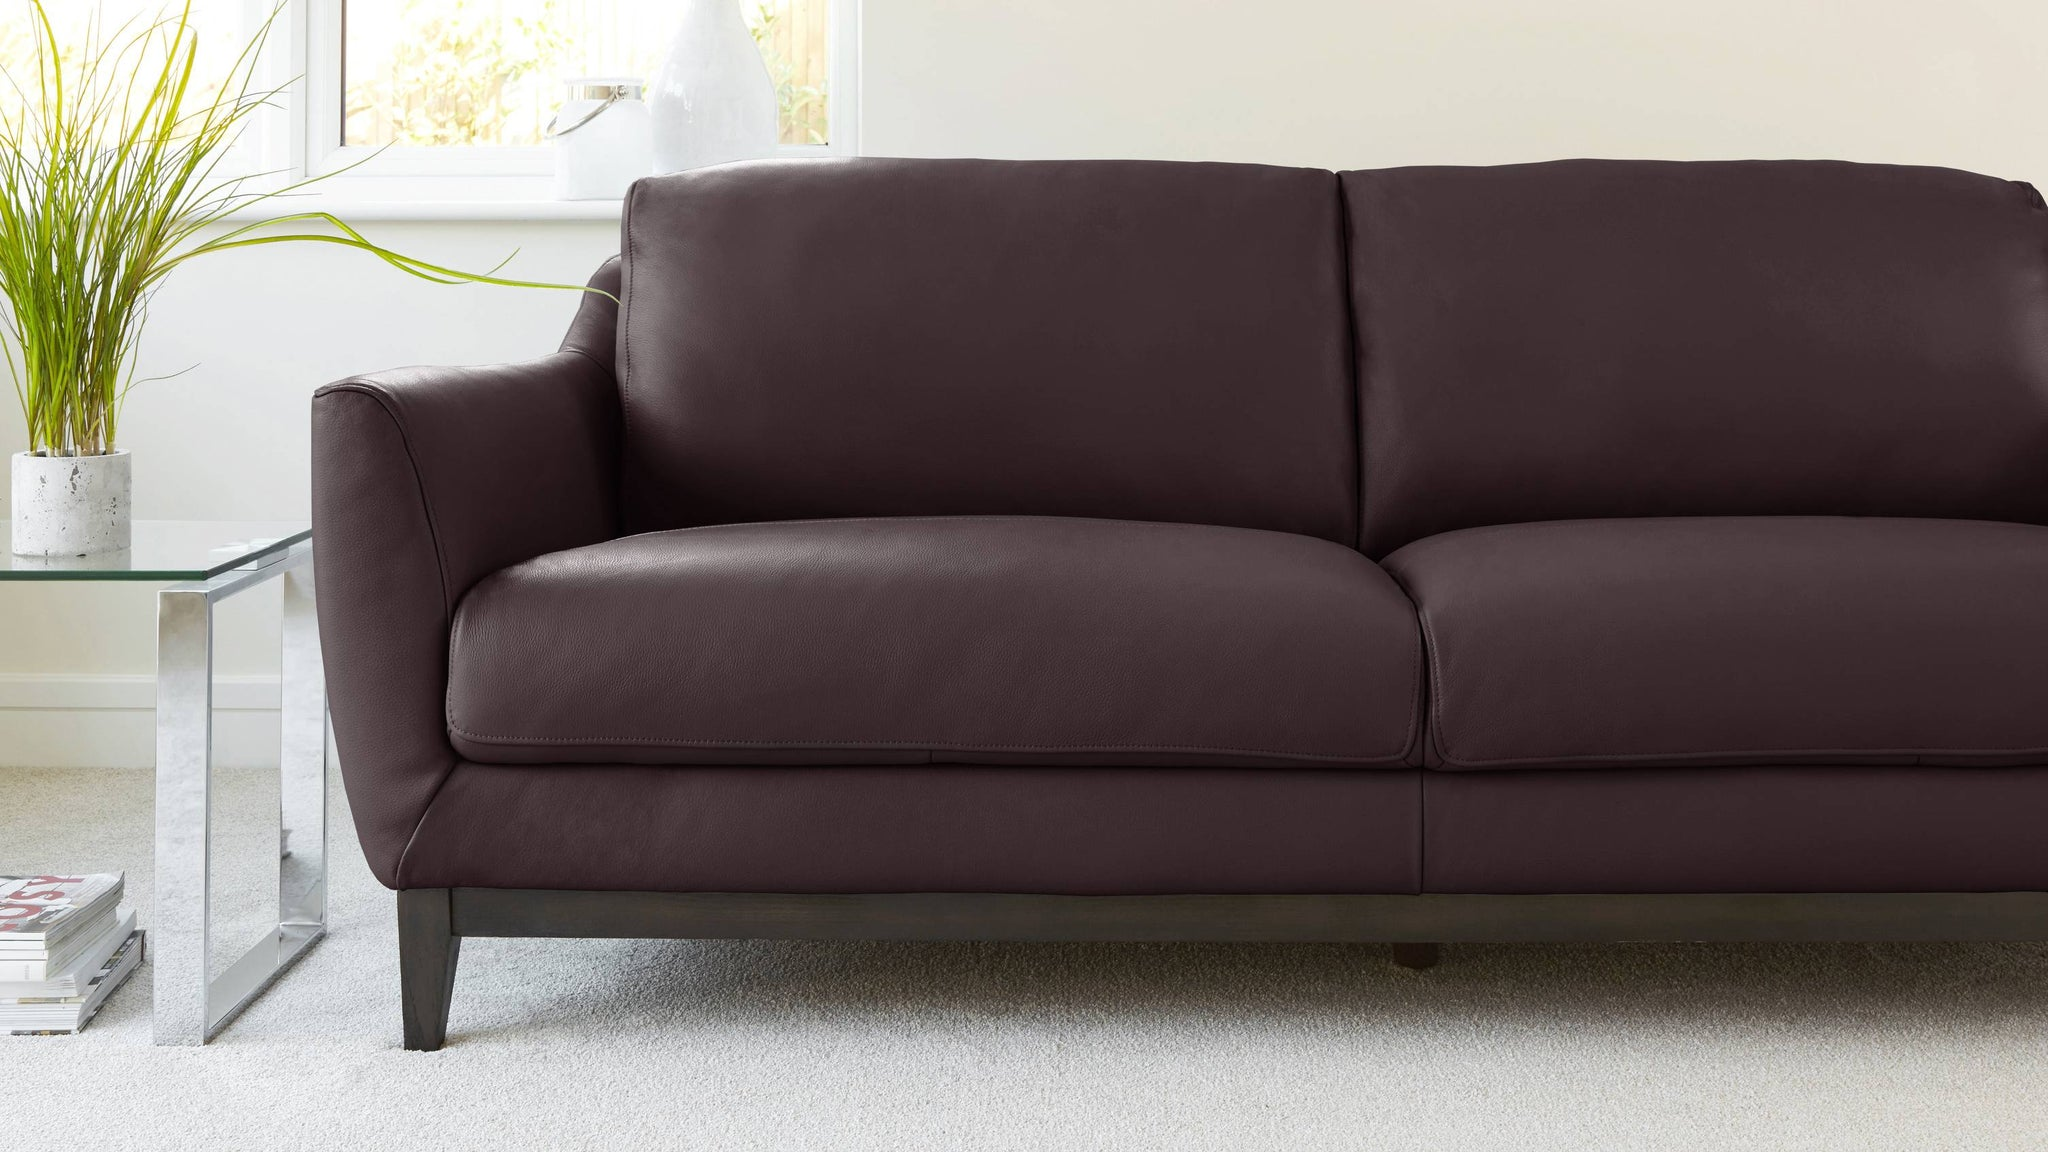 Heather 2-3 Seater Family Sofa